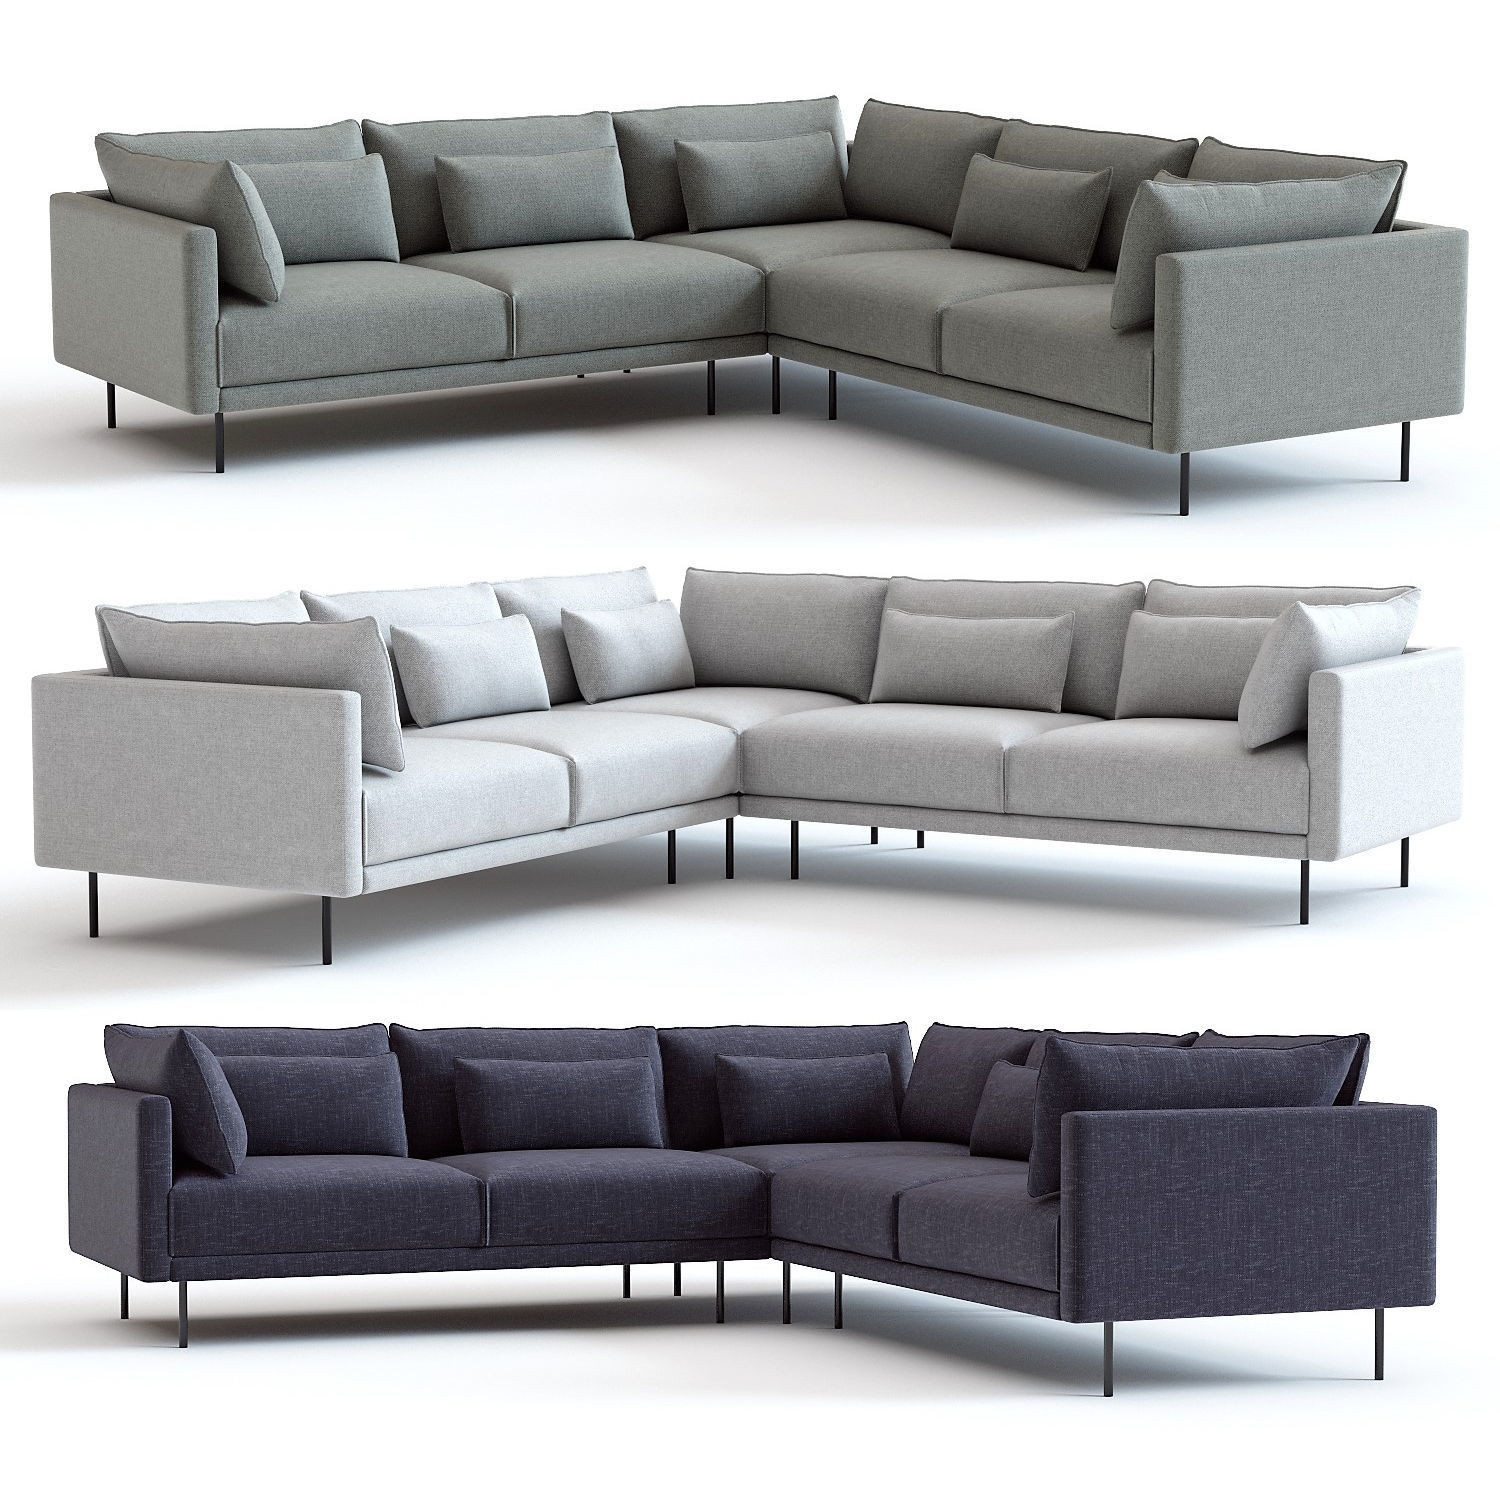 West Elm Halsey L-Shaped Sectional Sofa | 3D model